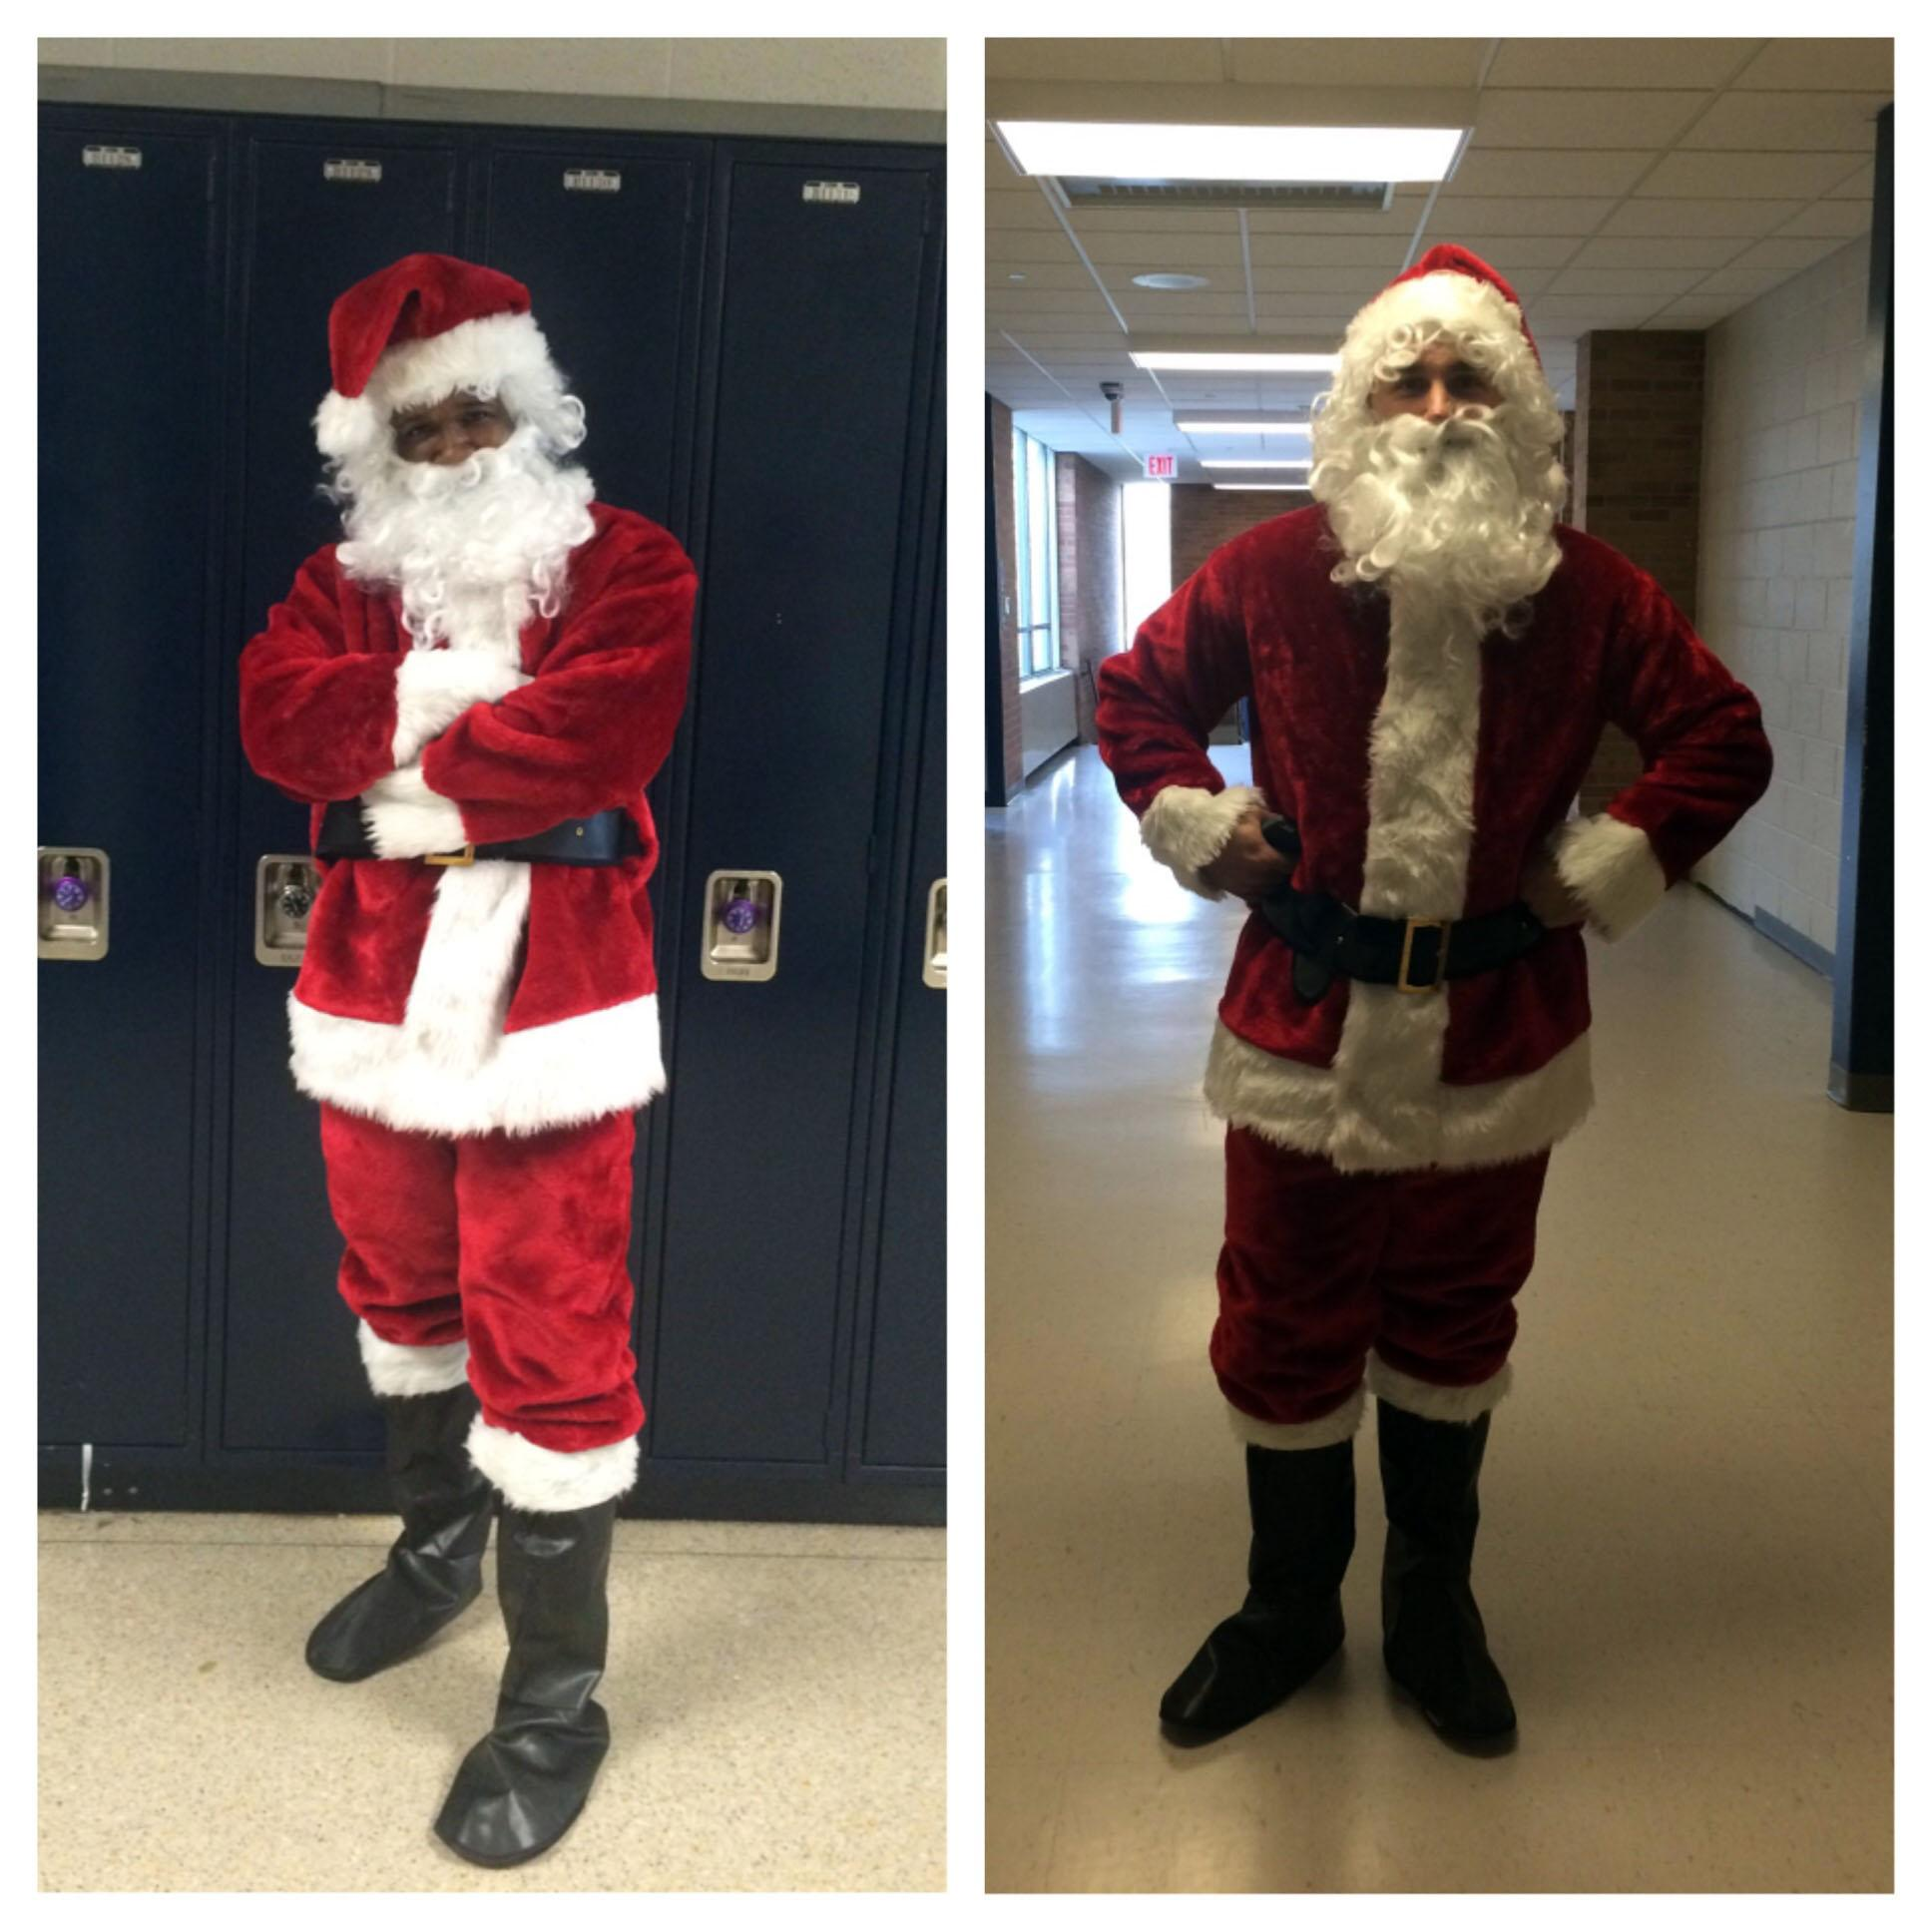 Which Santa wears the suit better? Vote in the poll located on our home page. LaRon Fields is on the left; Richard Crist is on the right.